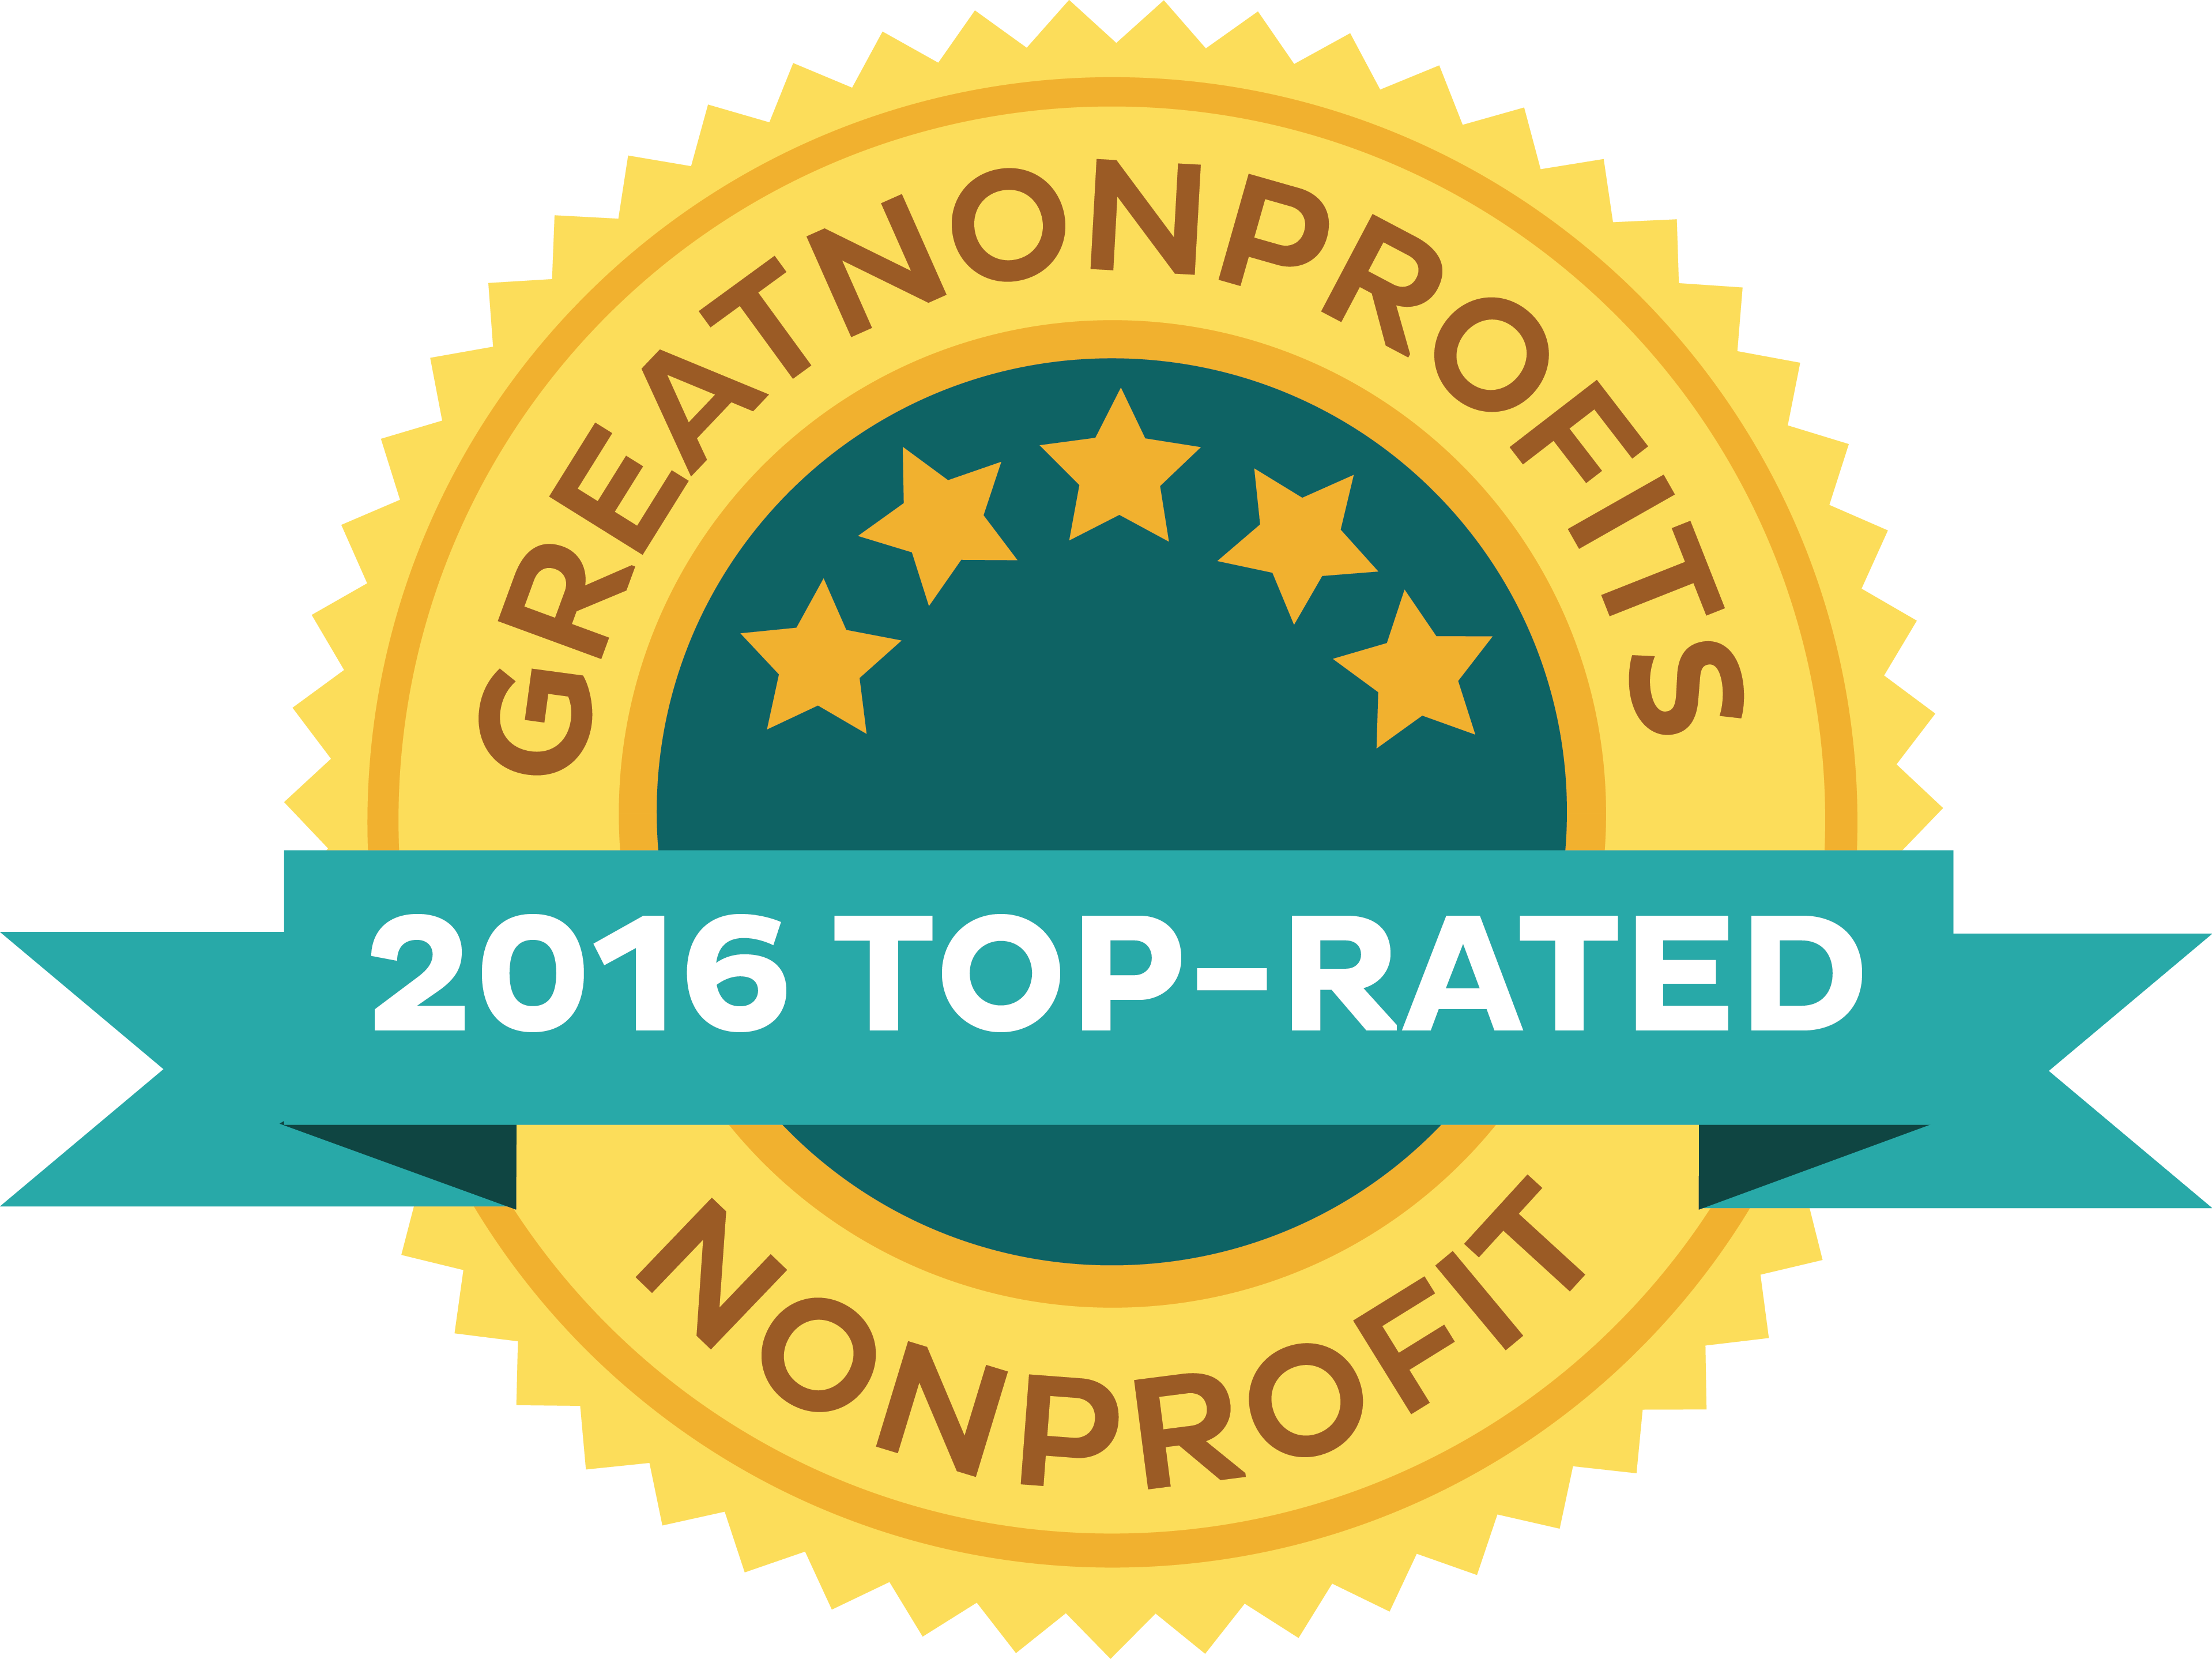 2016 Top-rated nonprofits and charities